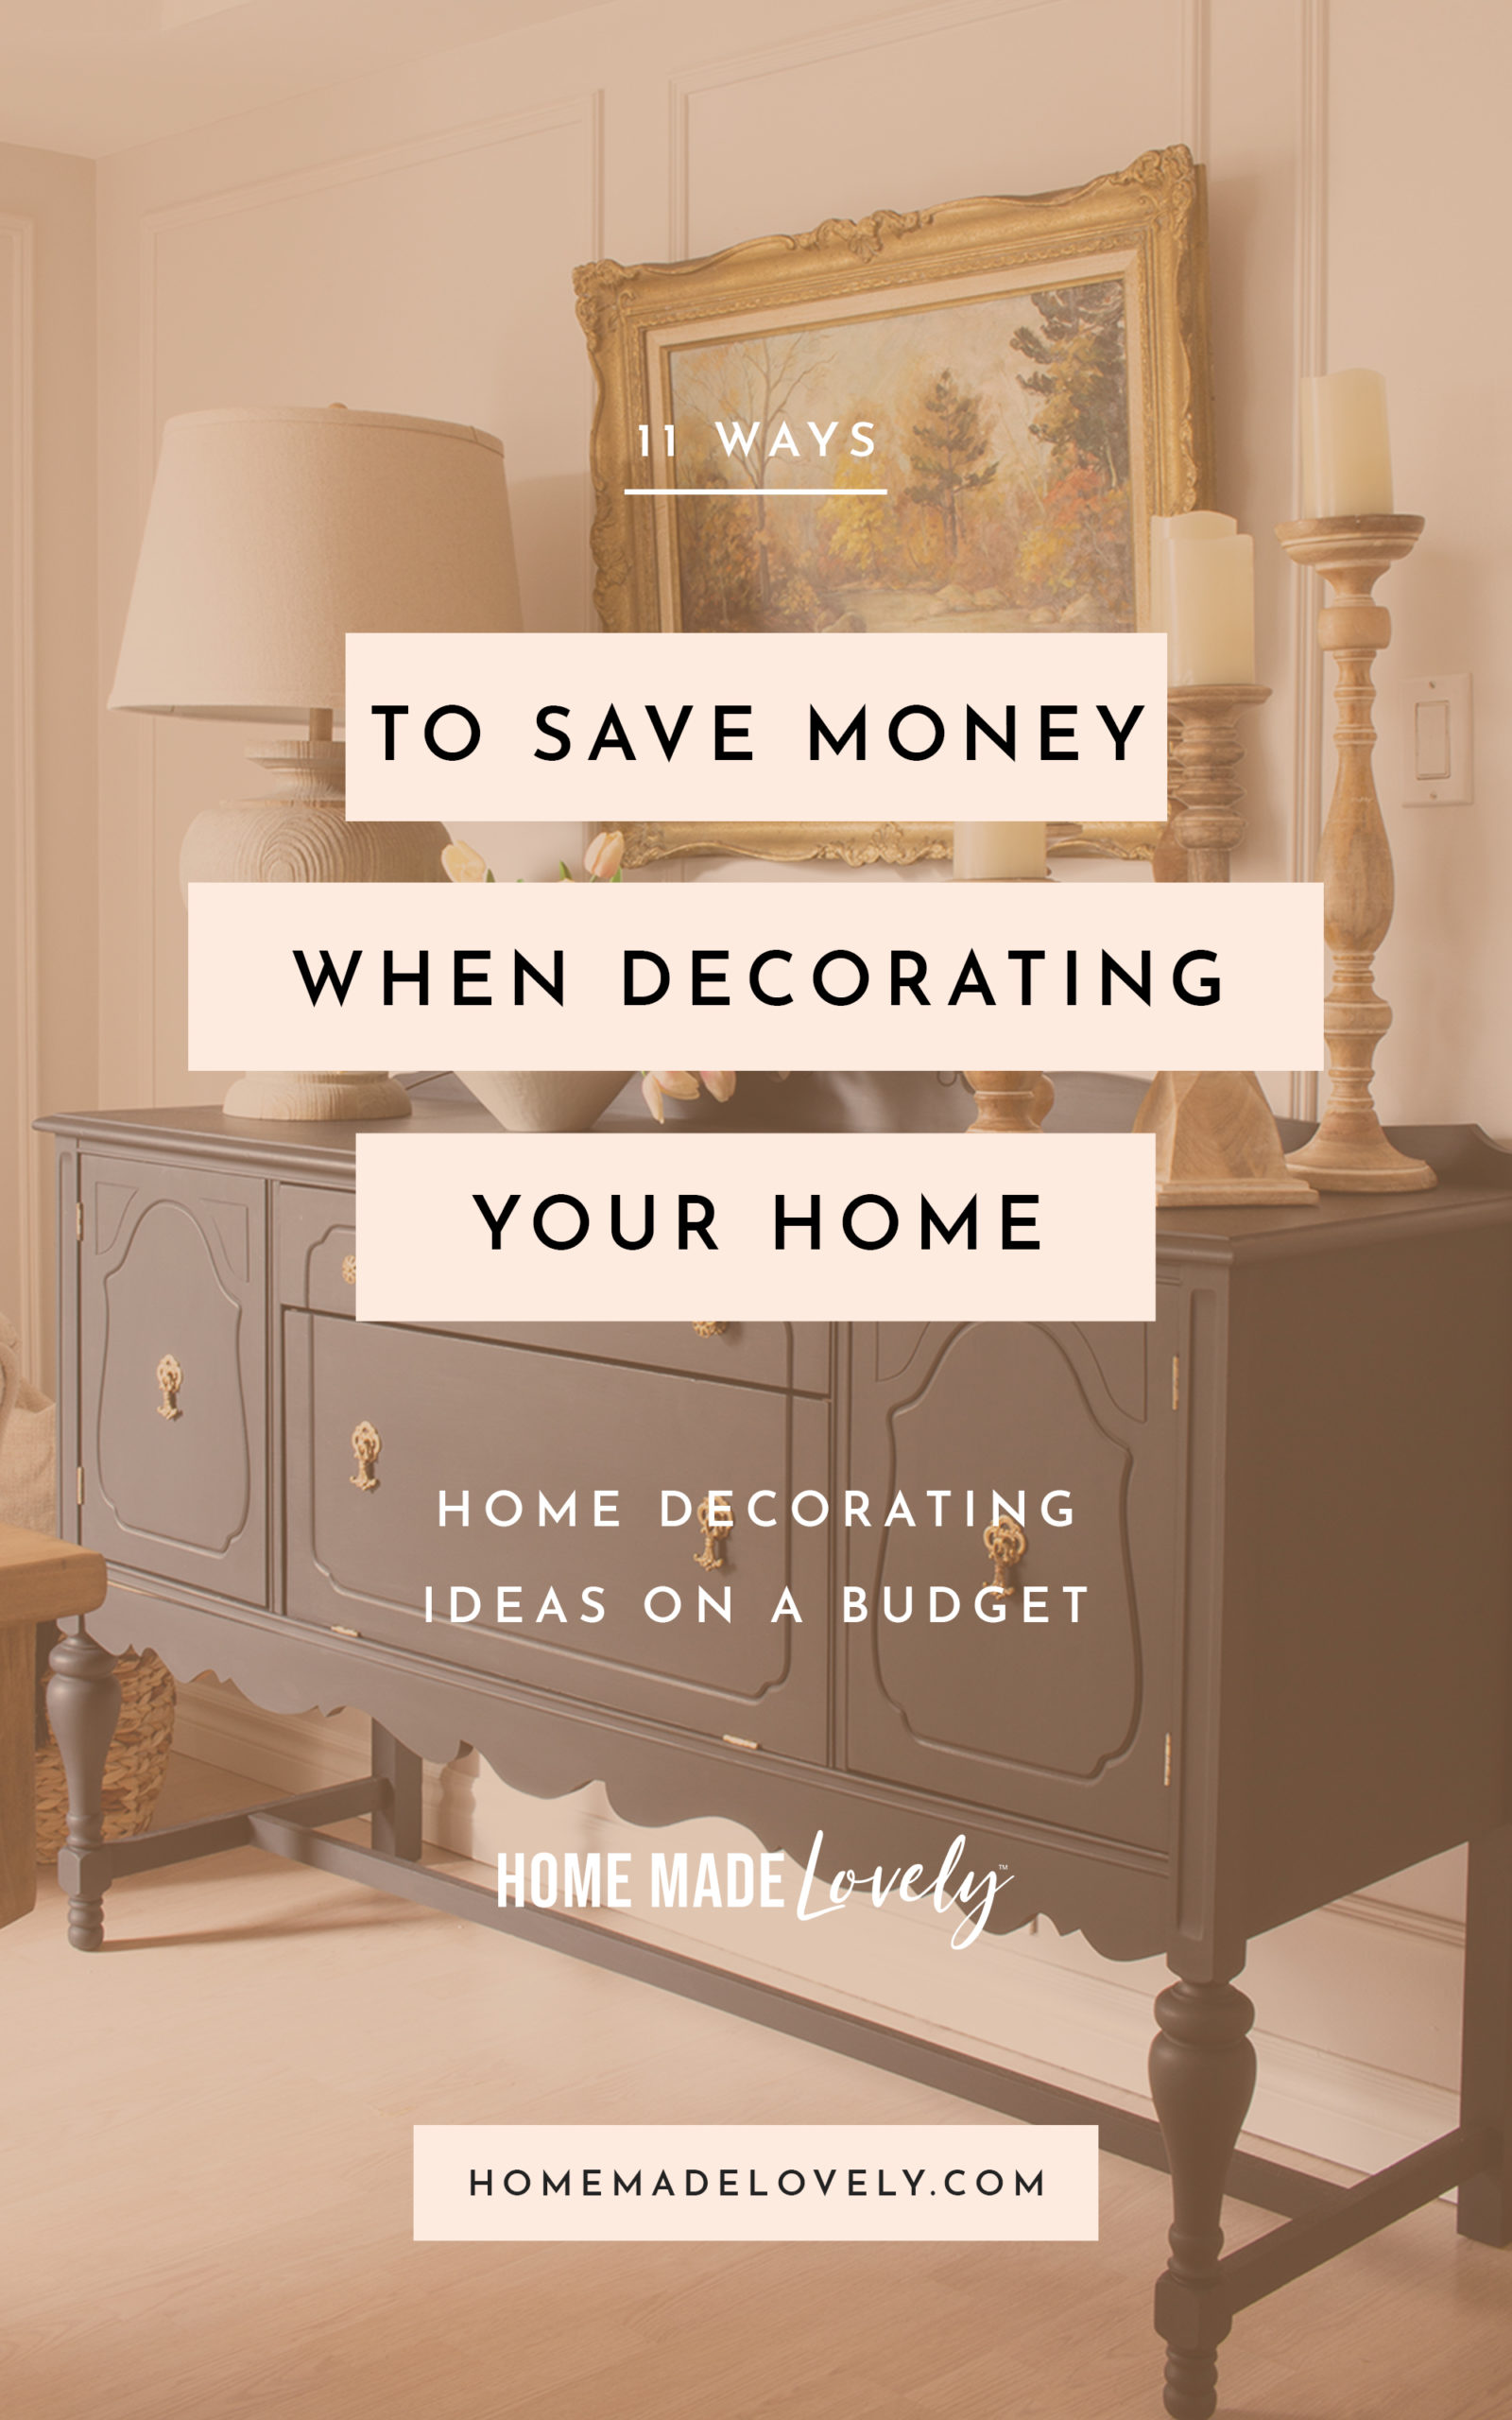 Home decorating ideas on a budget text overlay over a black buffet, vintage art and large lamp